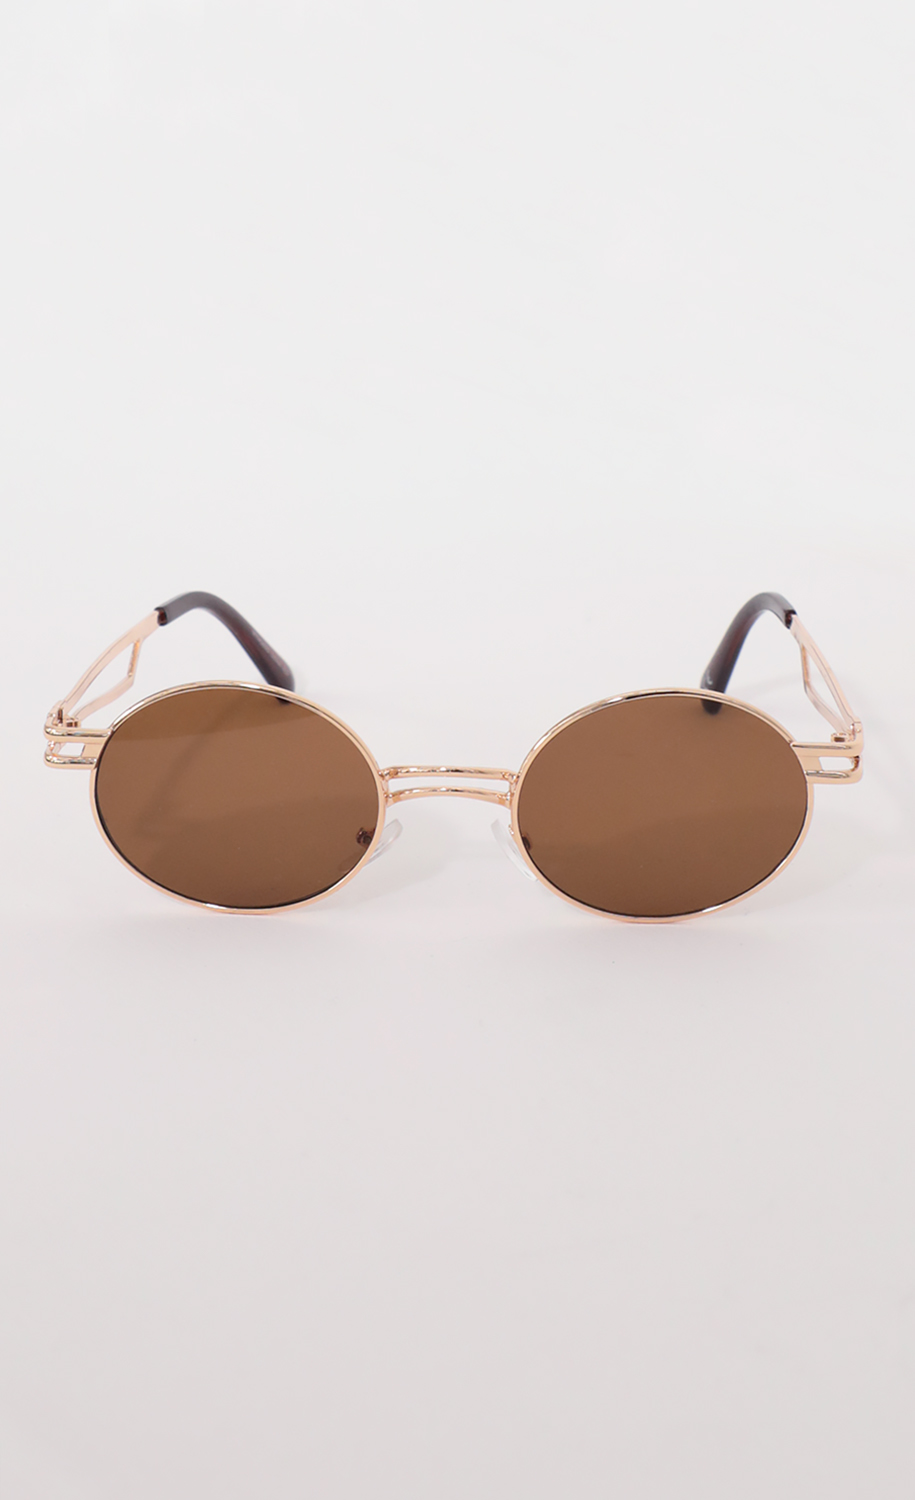 Metal Double Temple Accent Oval Round Gold Sunglasses in Brown